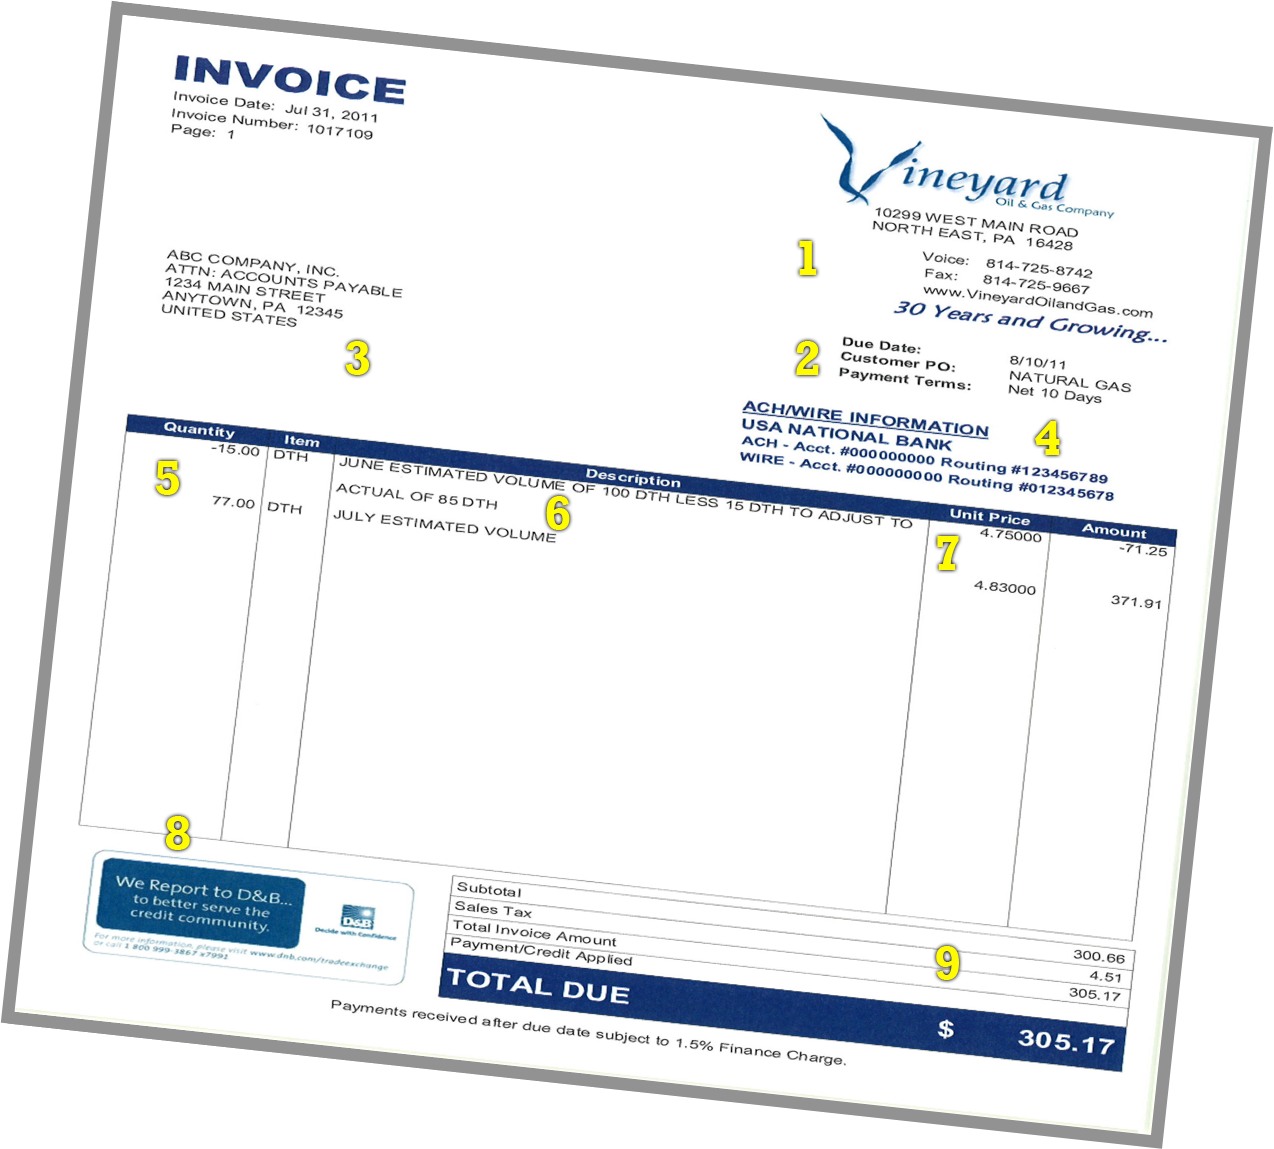 vineyard oil gas company how to read my invoice